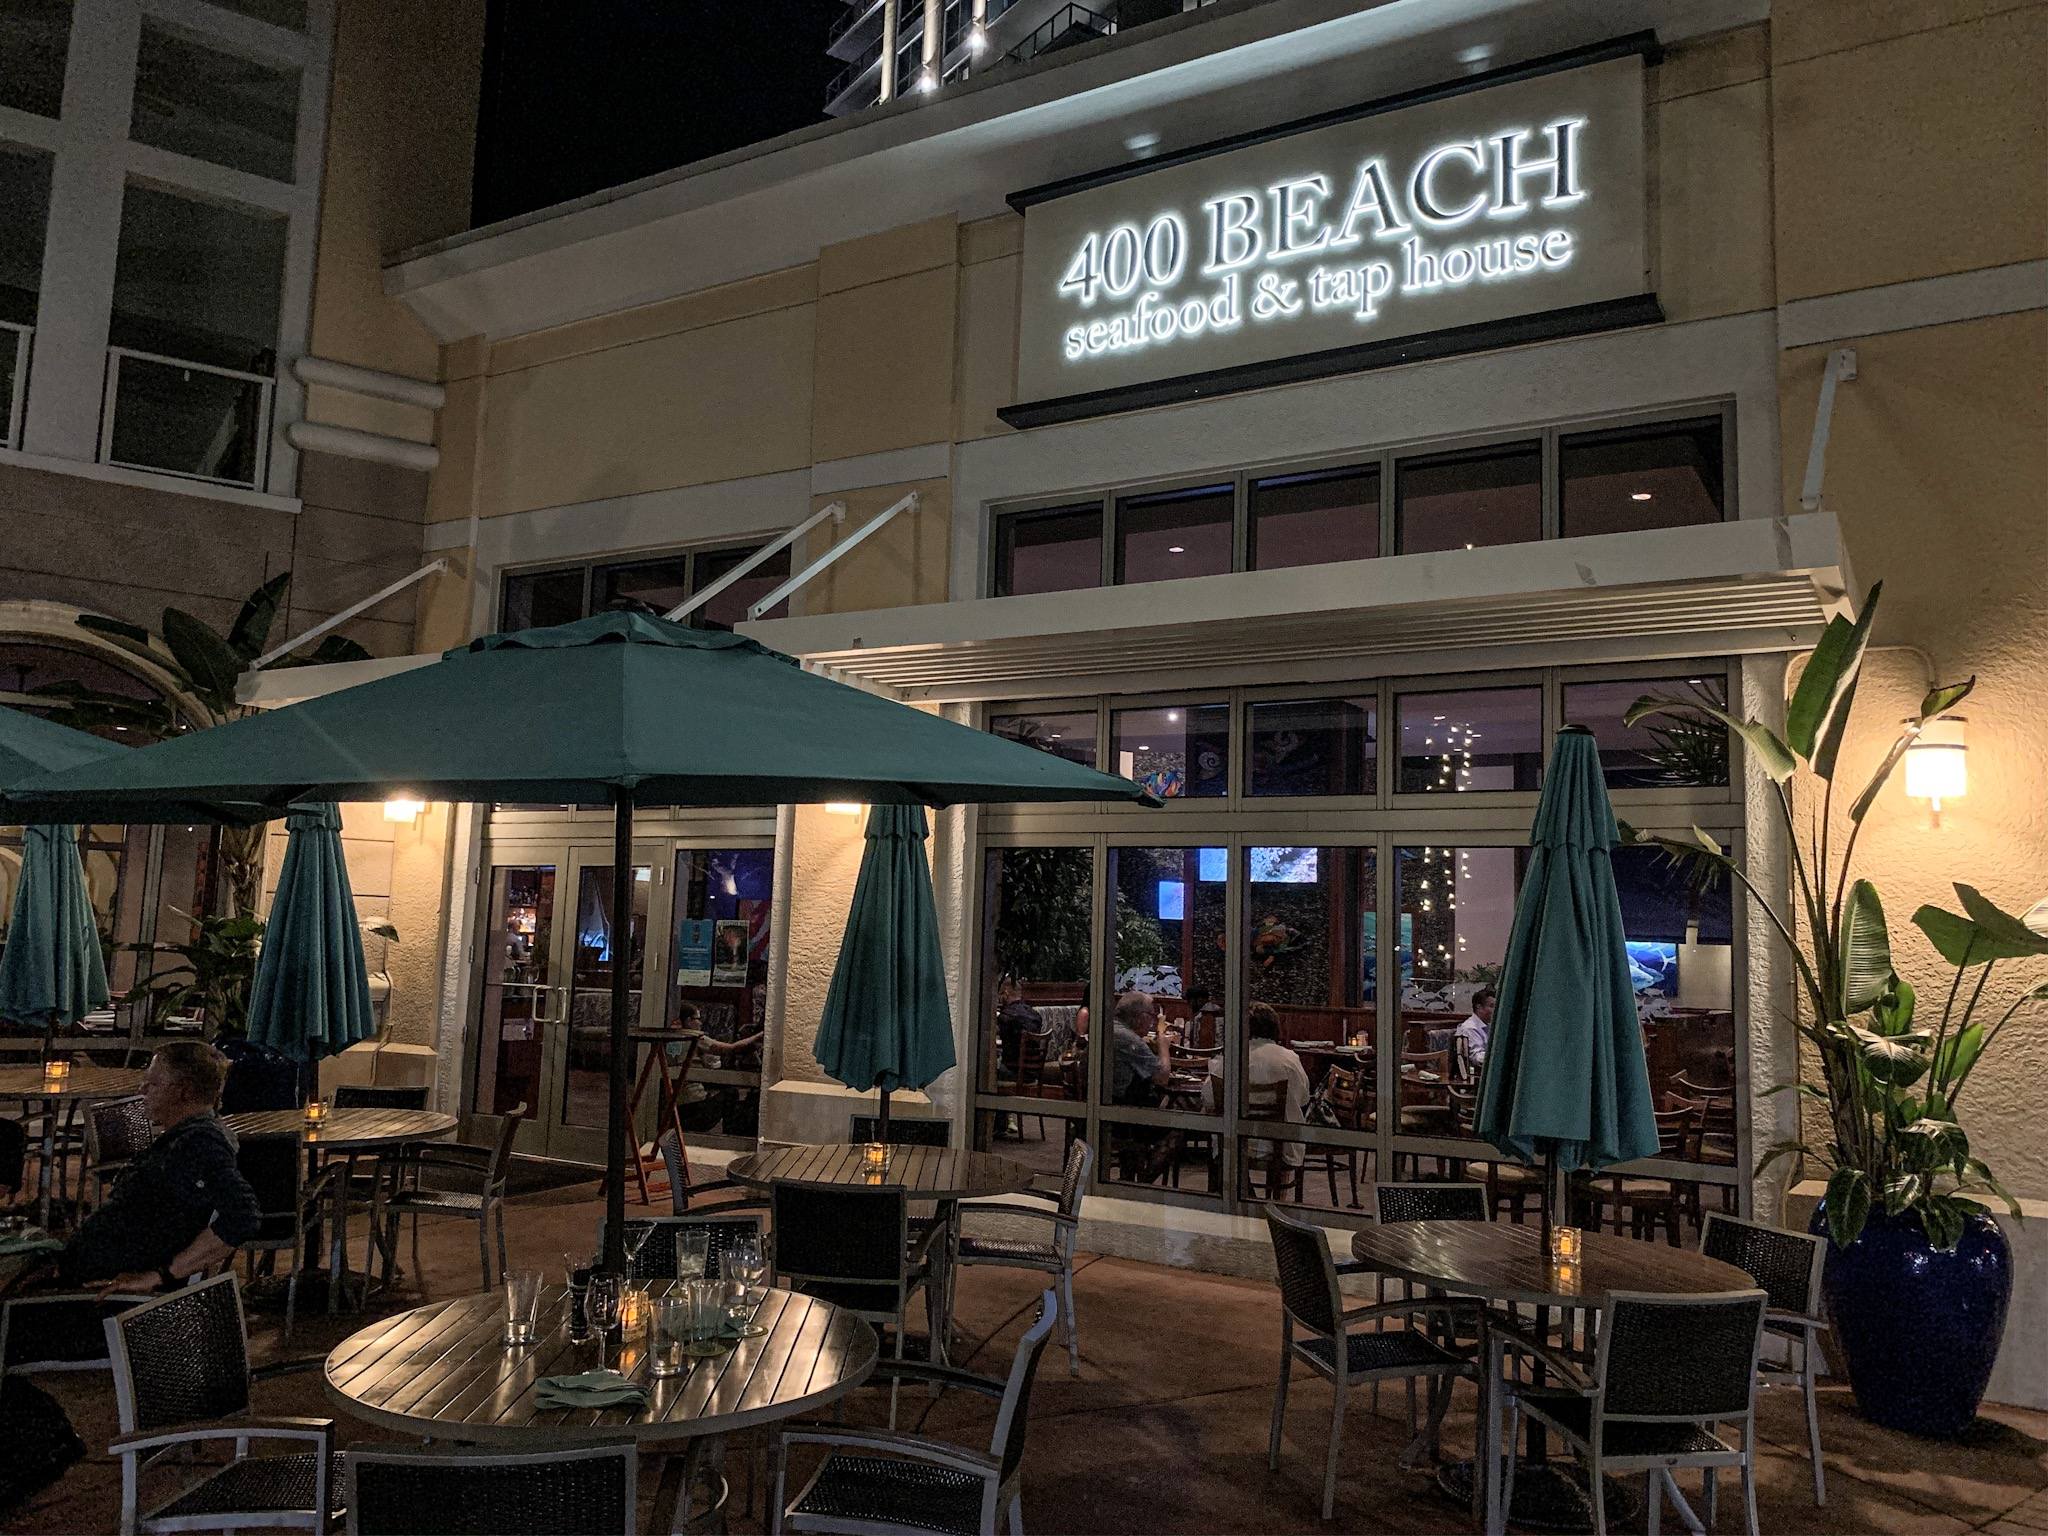 The exterior of 400 Beach at night